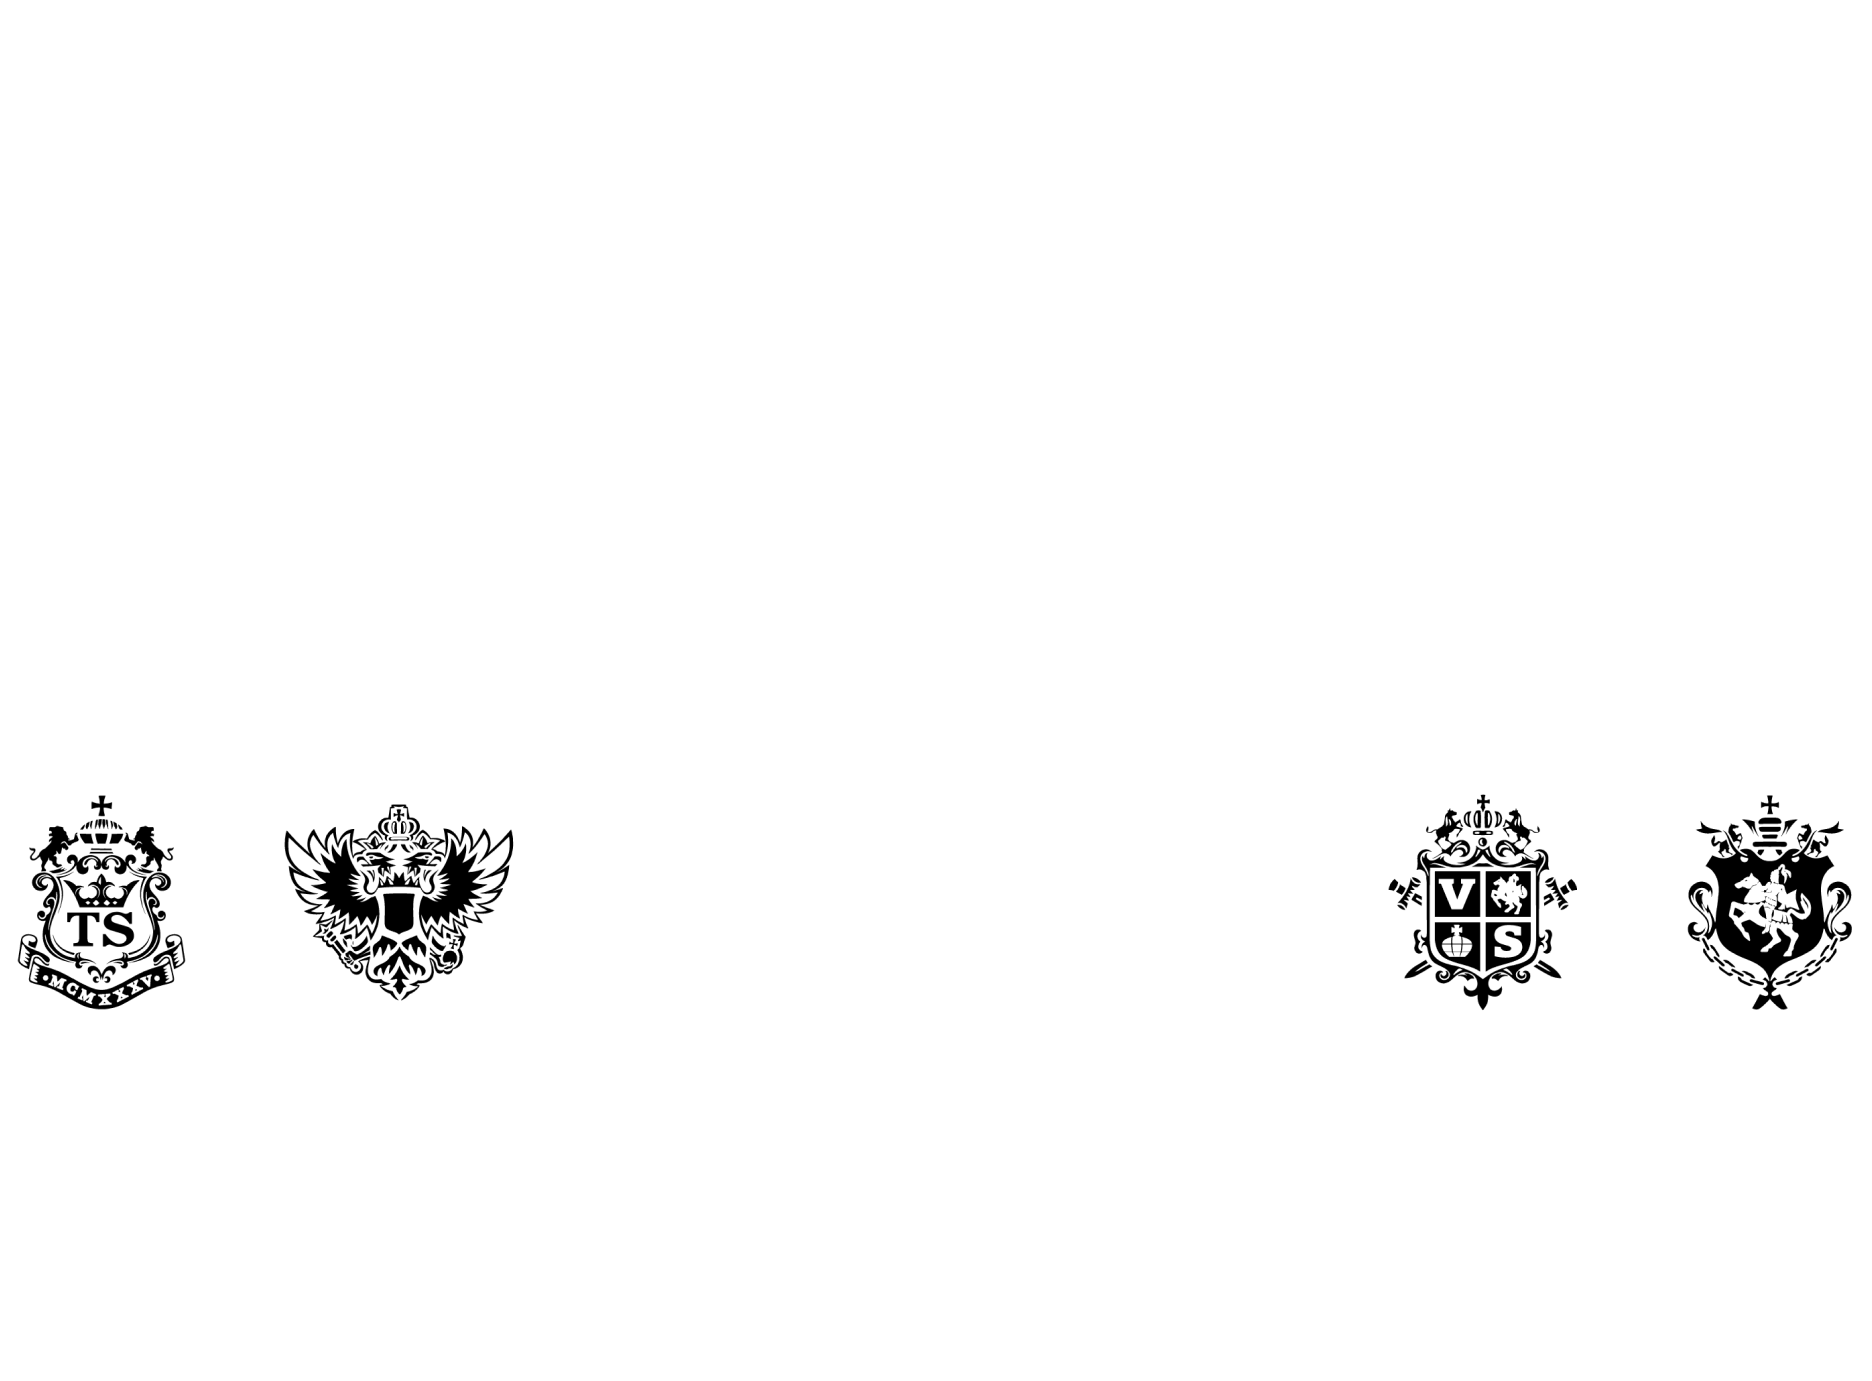 World's No. 1 Vodka